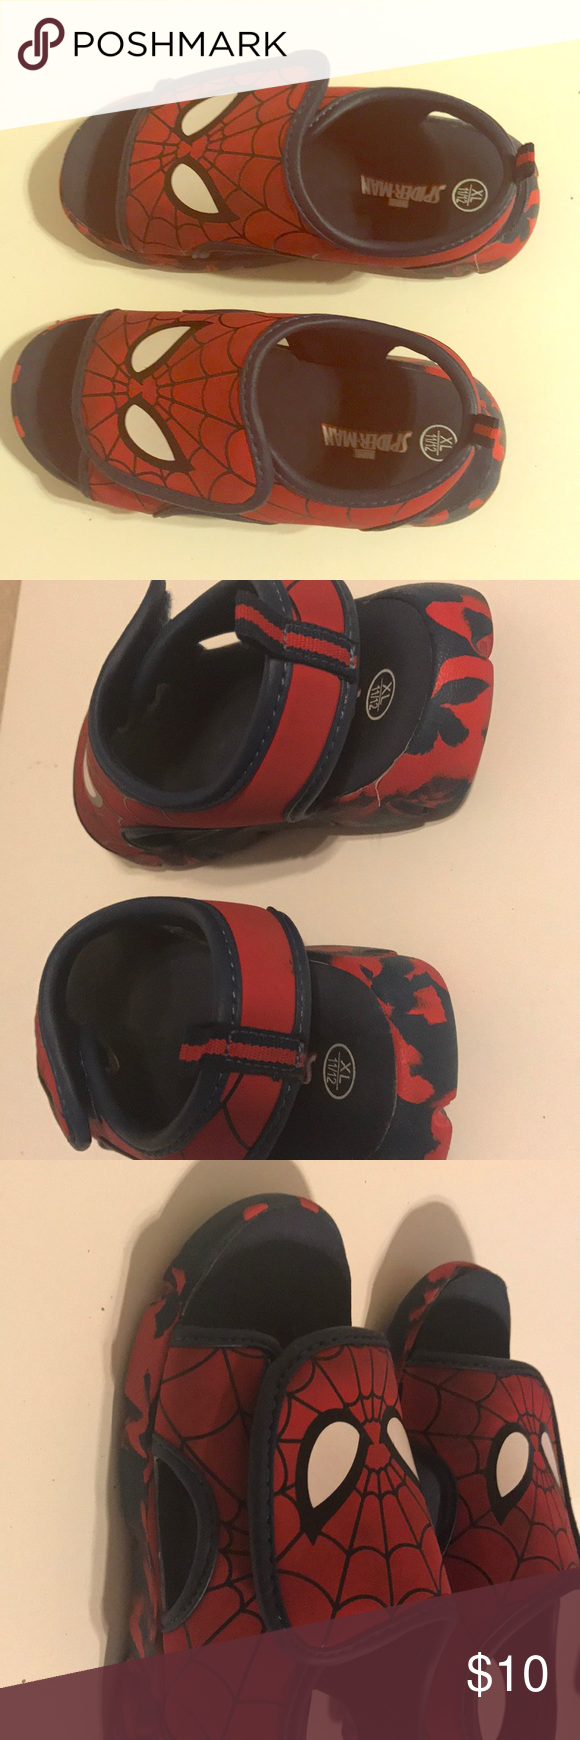 Spider-Man sandals Spider-Man Velcro sandals. Easy to put on and comfortable